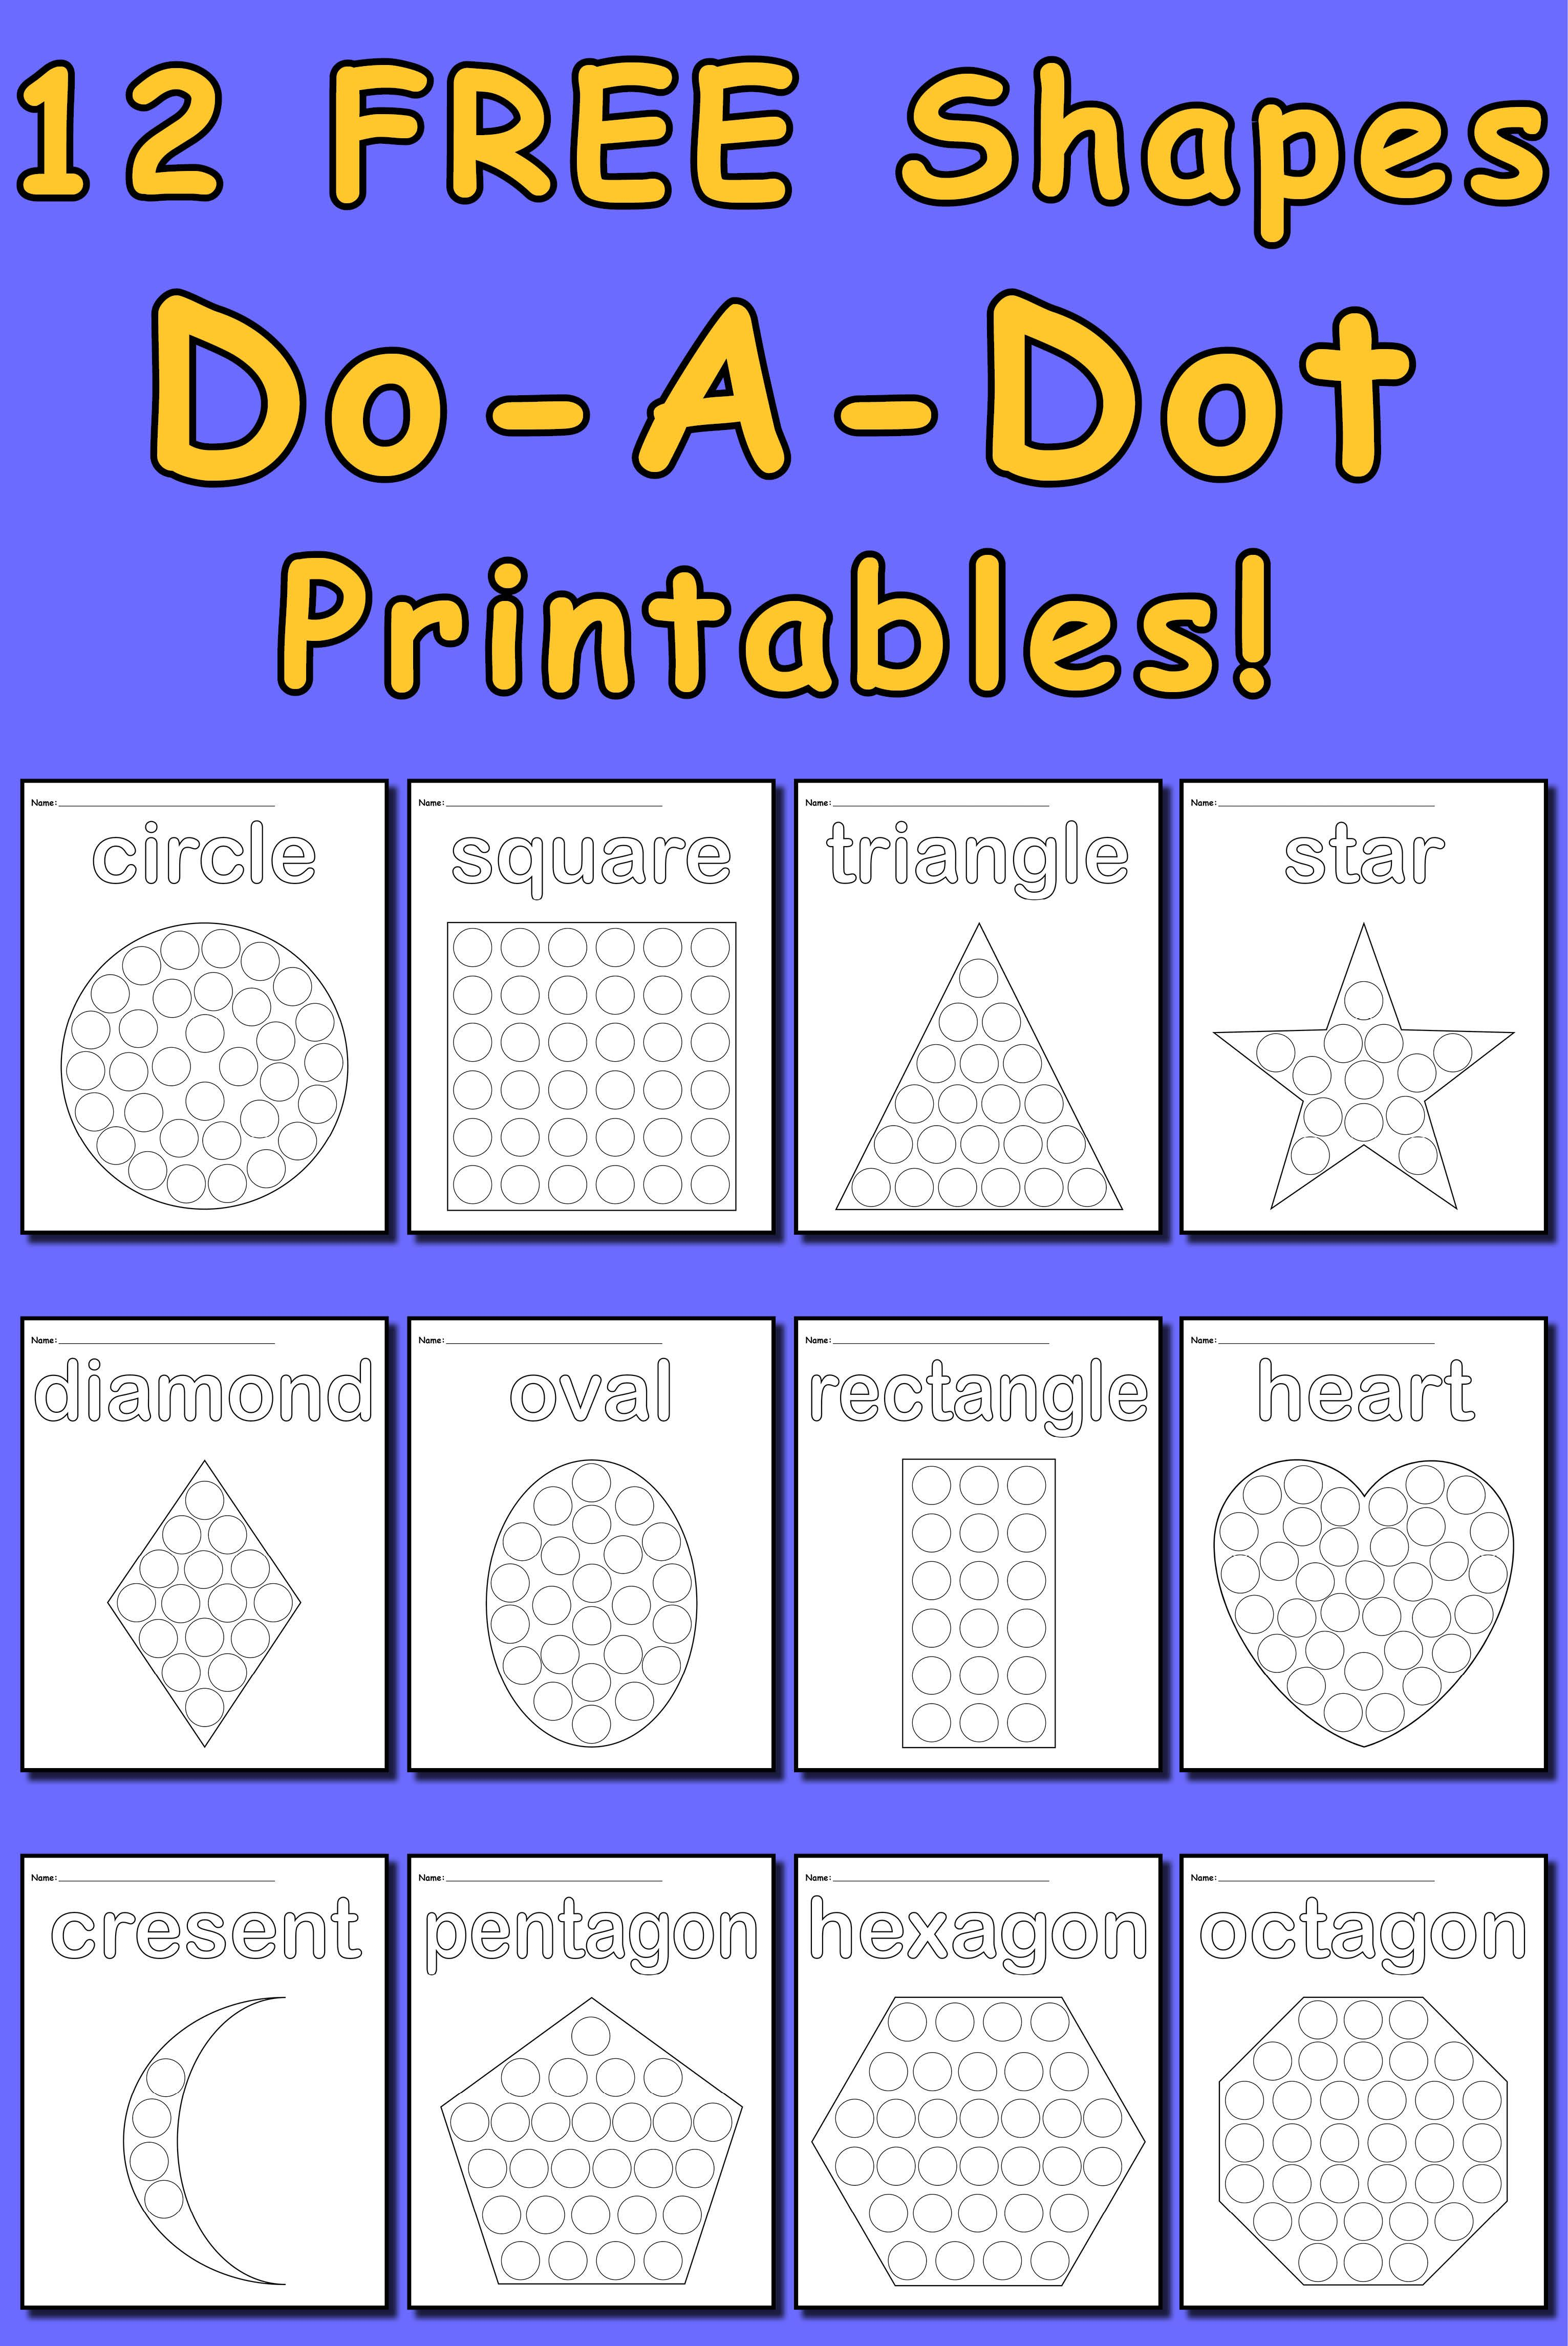 12 FREE Shape Do-A-Dot Worksheets to work on fine motor skills for